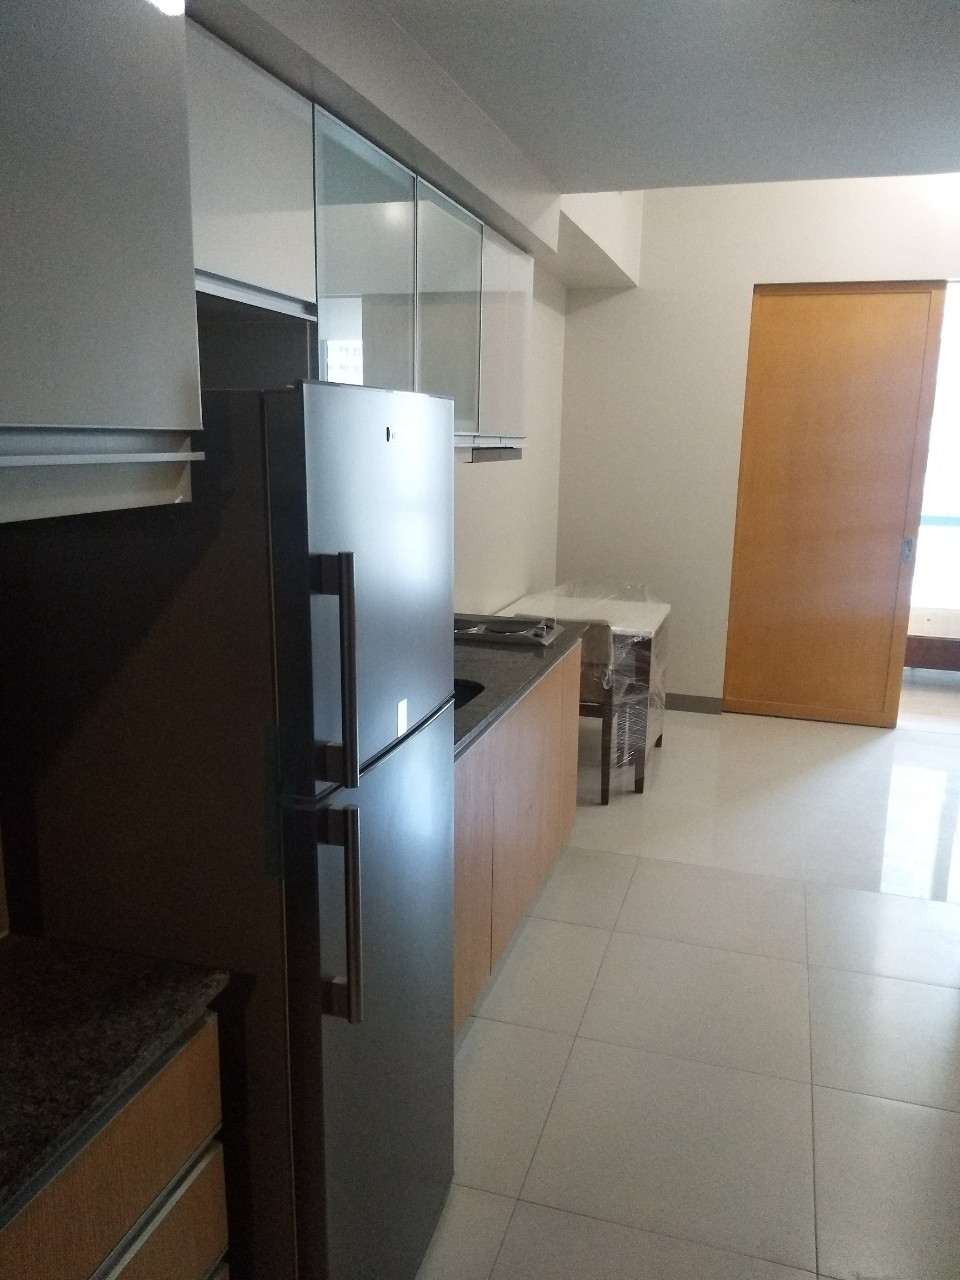 1 Bedroom condo for Sale in One Uptown Residence, BGC, Taguig City